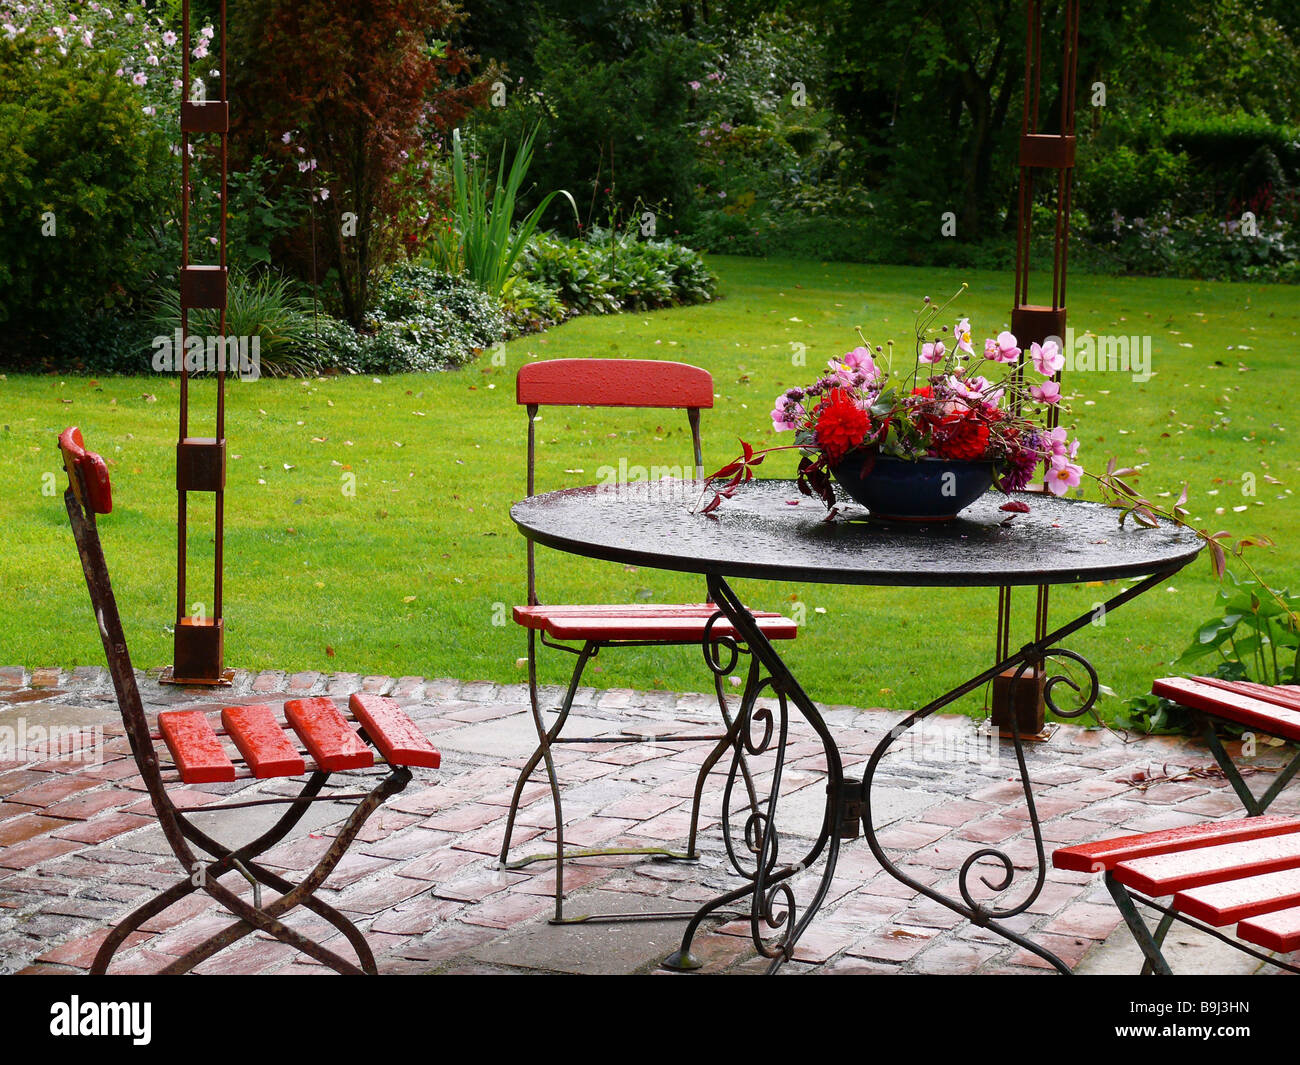 Garden garden furniture flower peel garden terrace garden table chairs table peel flower jewelry flowers terrace furniture